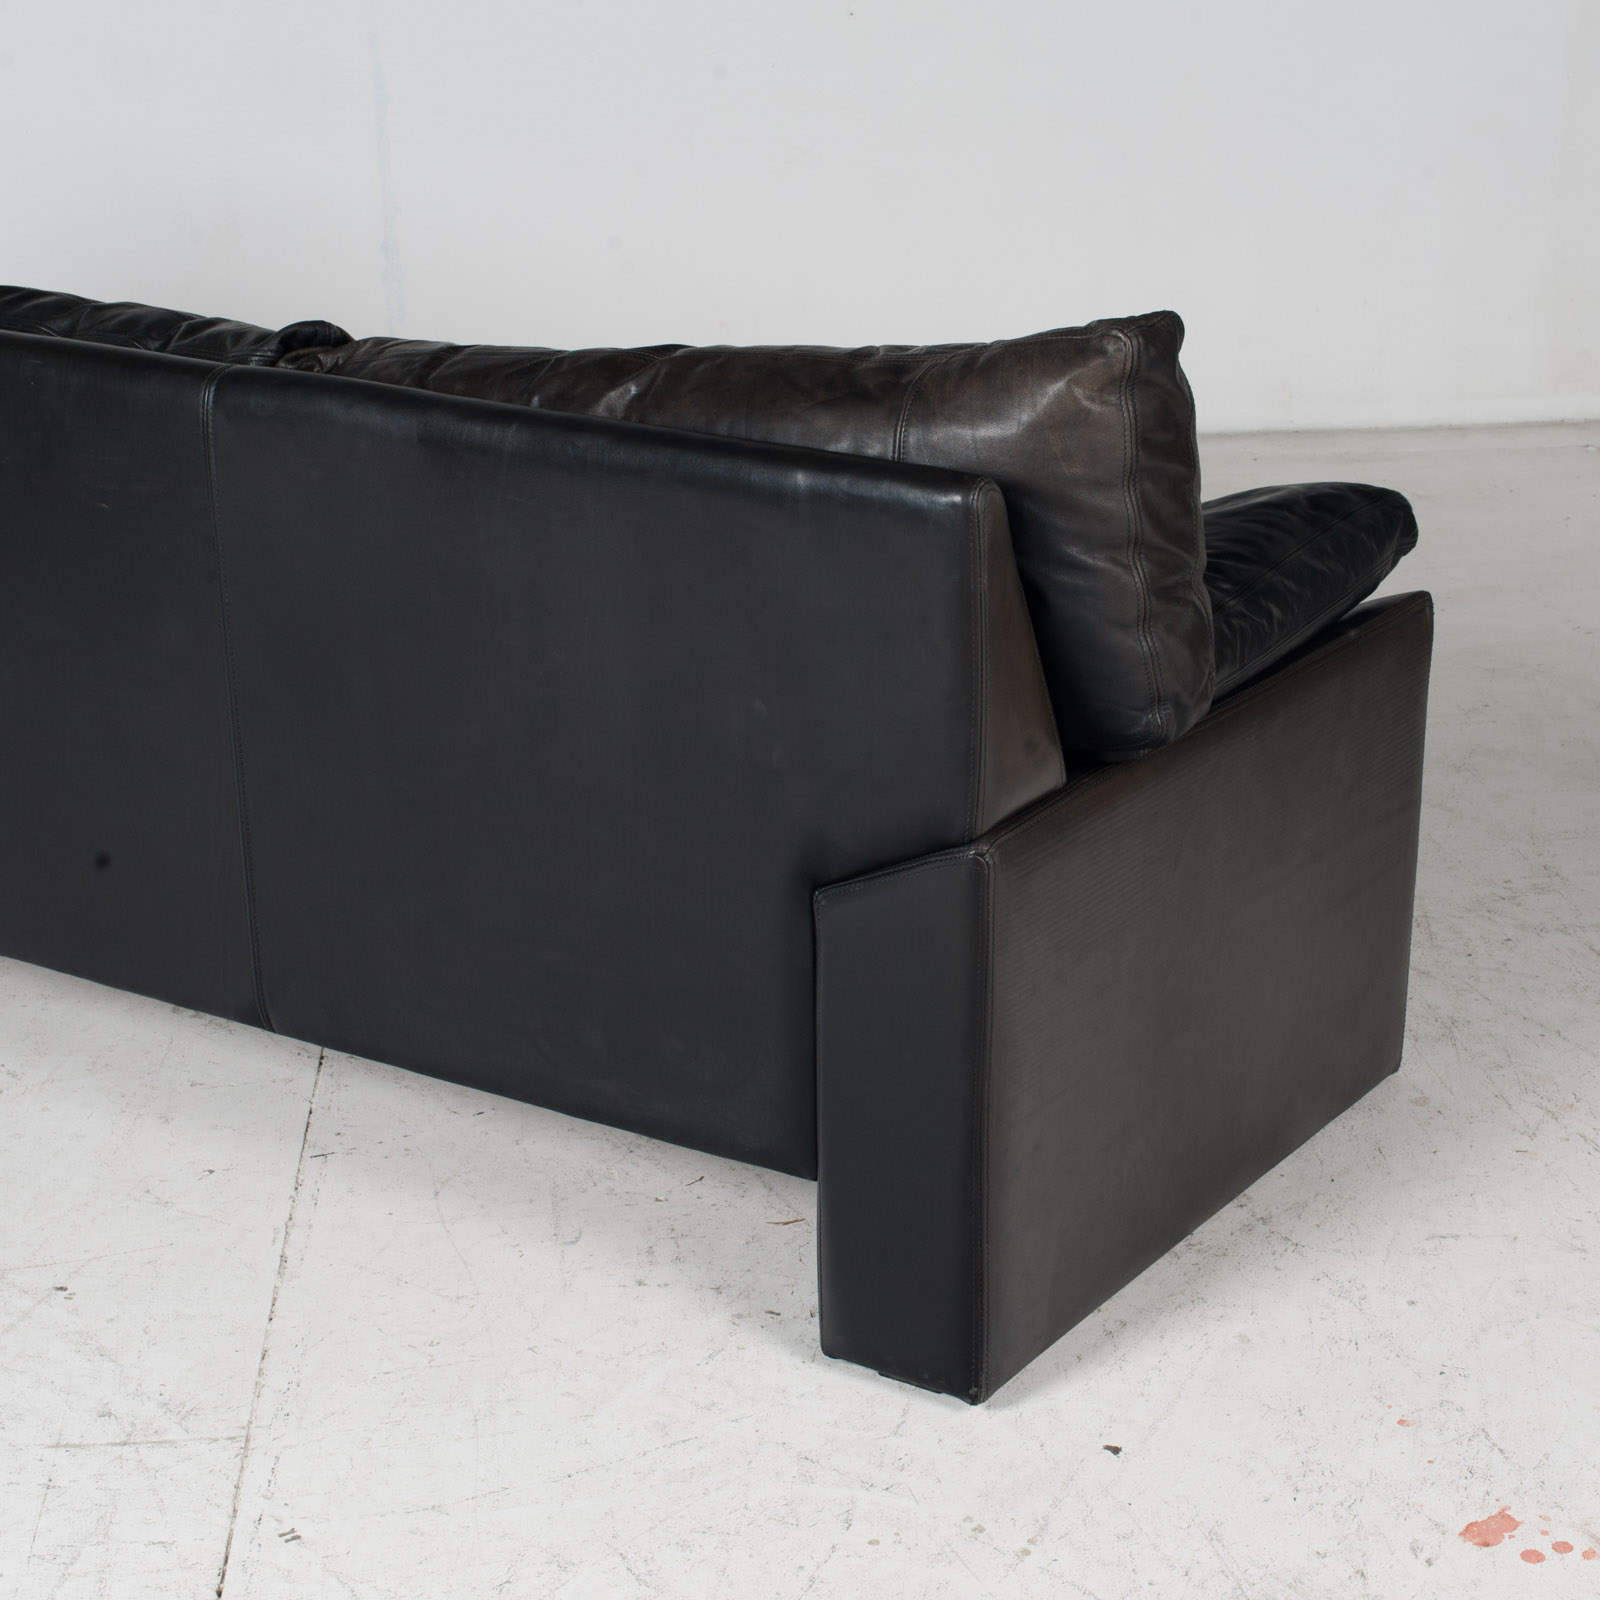 3 Seat Sofa By Stouby In Black Leather, 1960s, Denmark 9